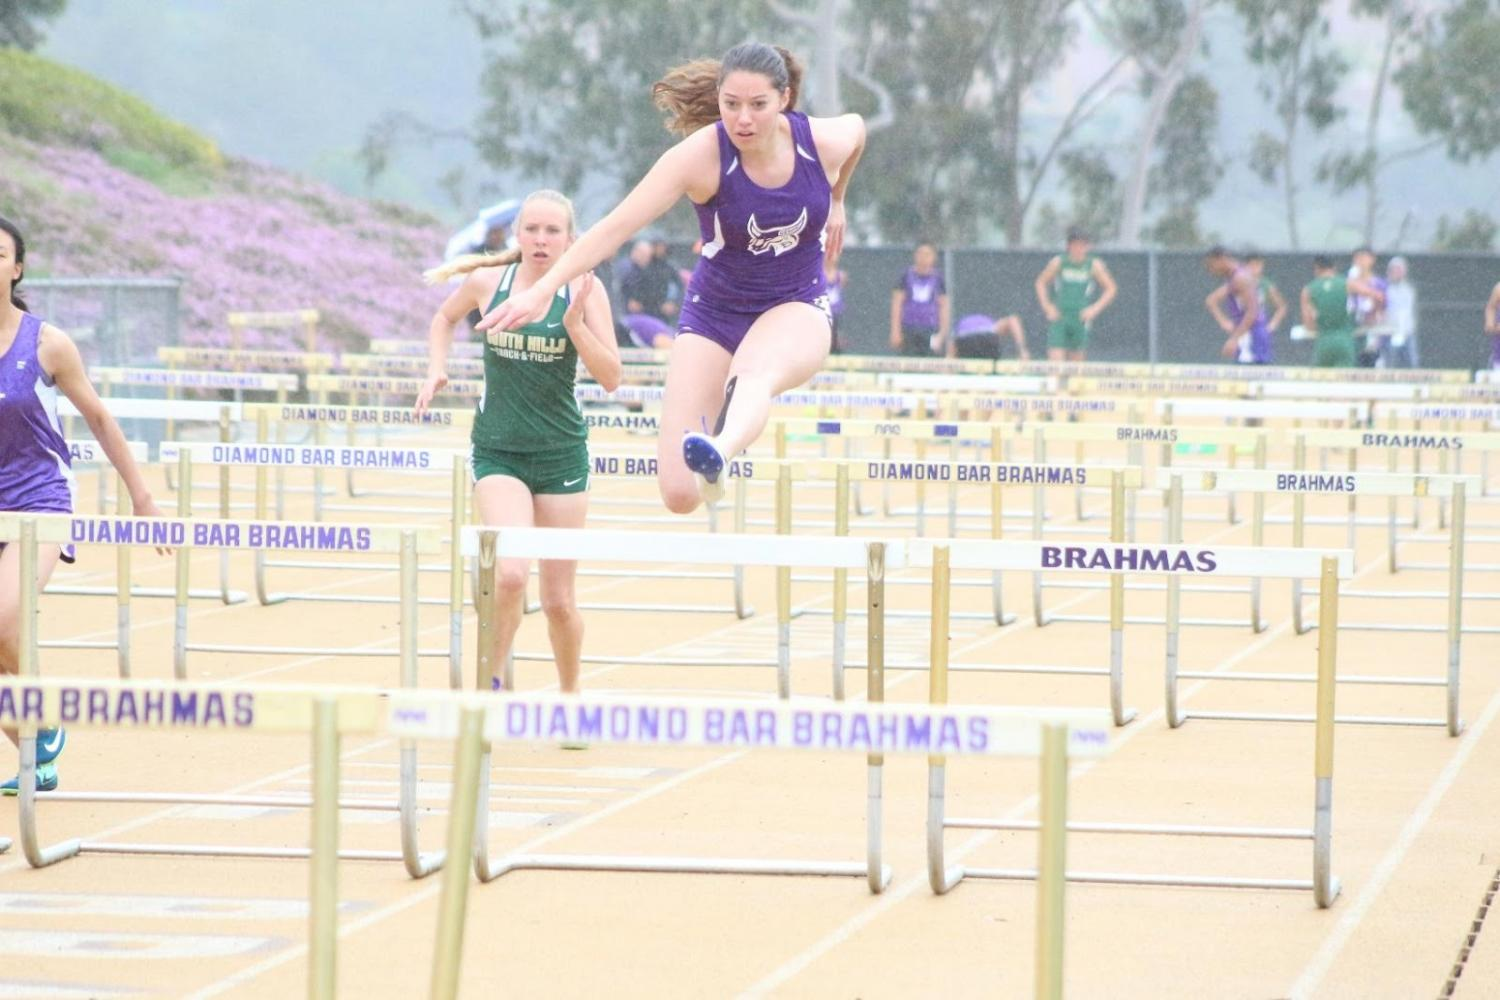 Junior+Ana+Figueroa+competes+in+hurdles+at+the+first+home+meet+of+the+season.